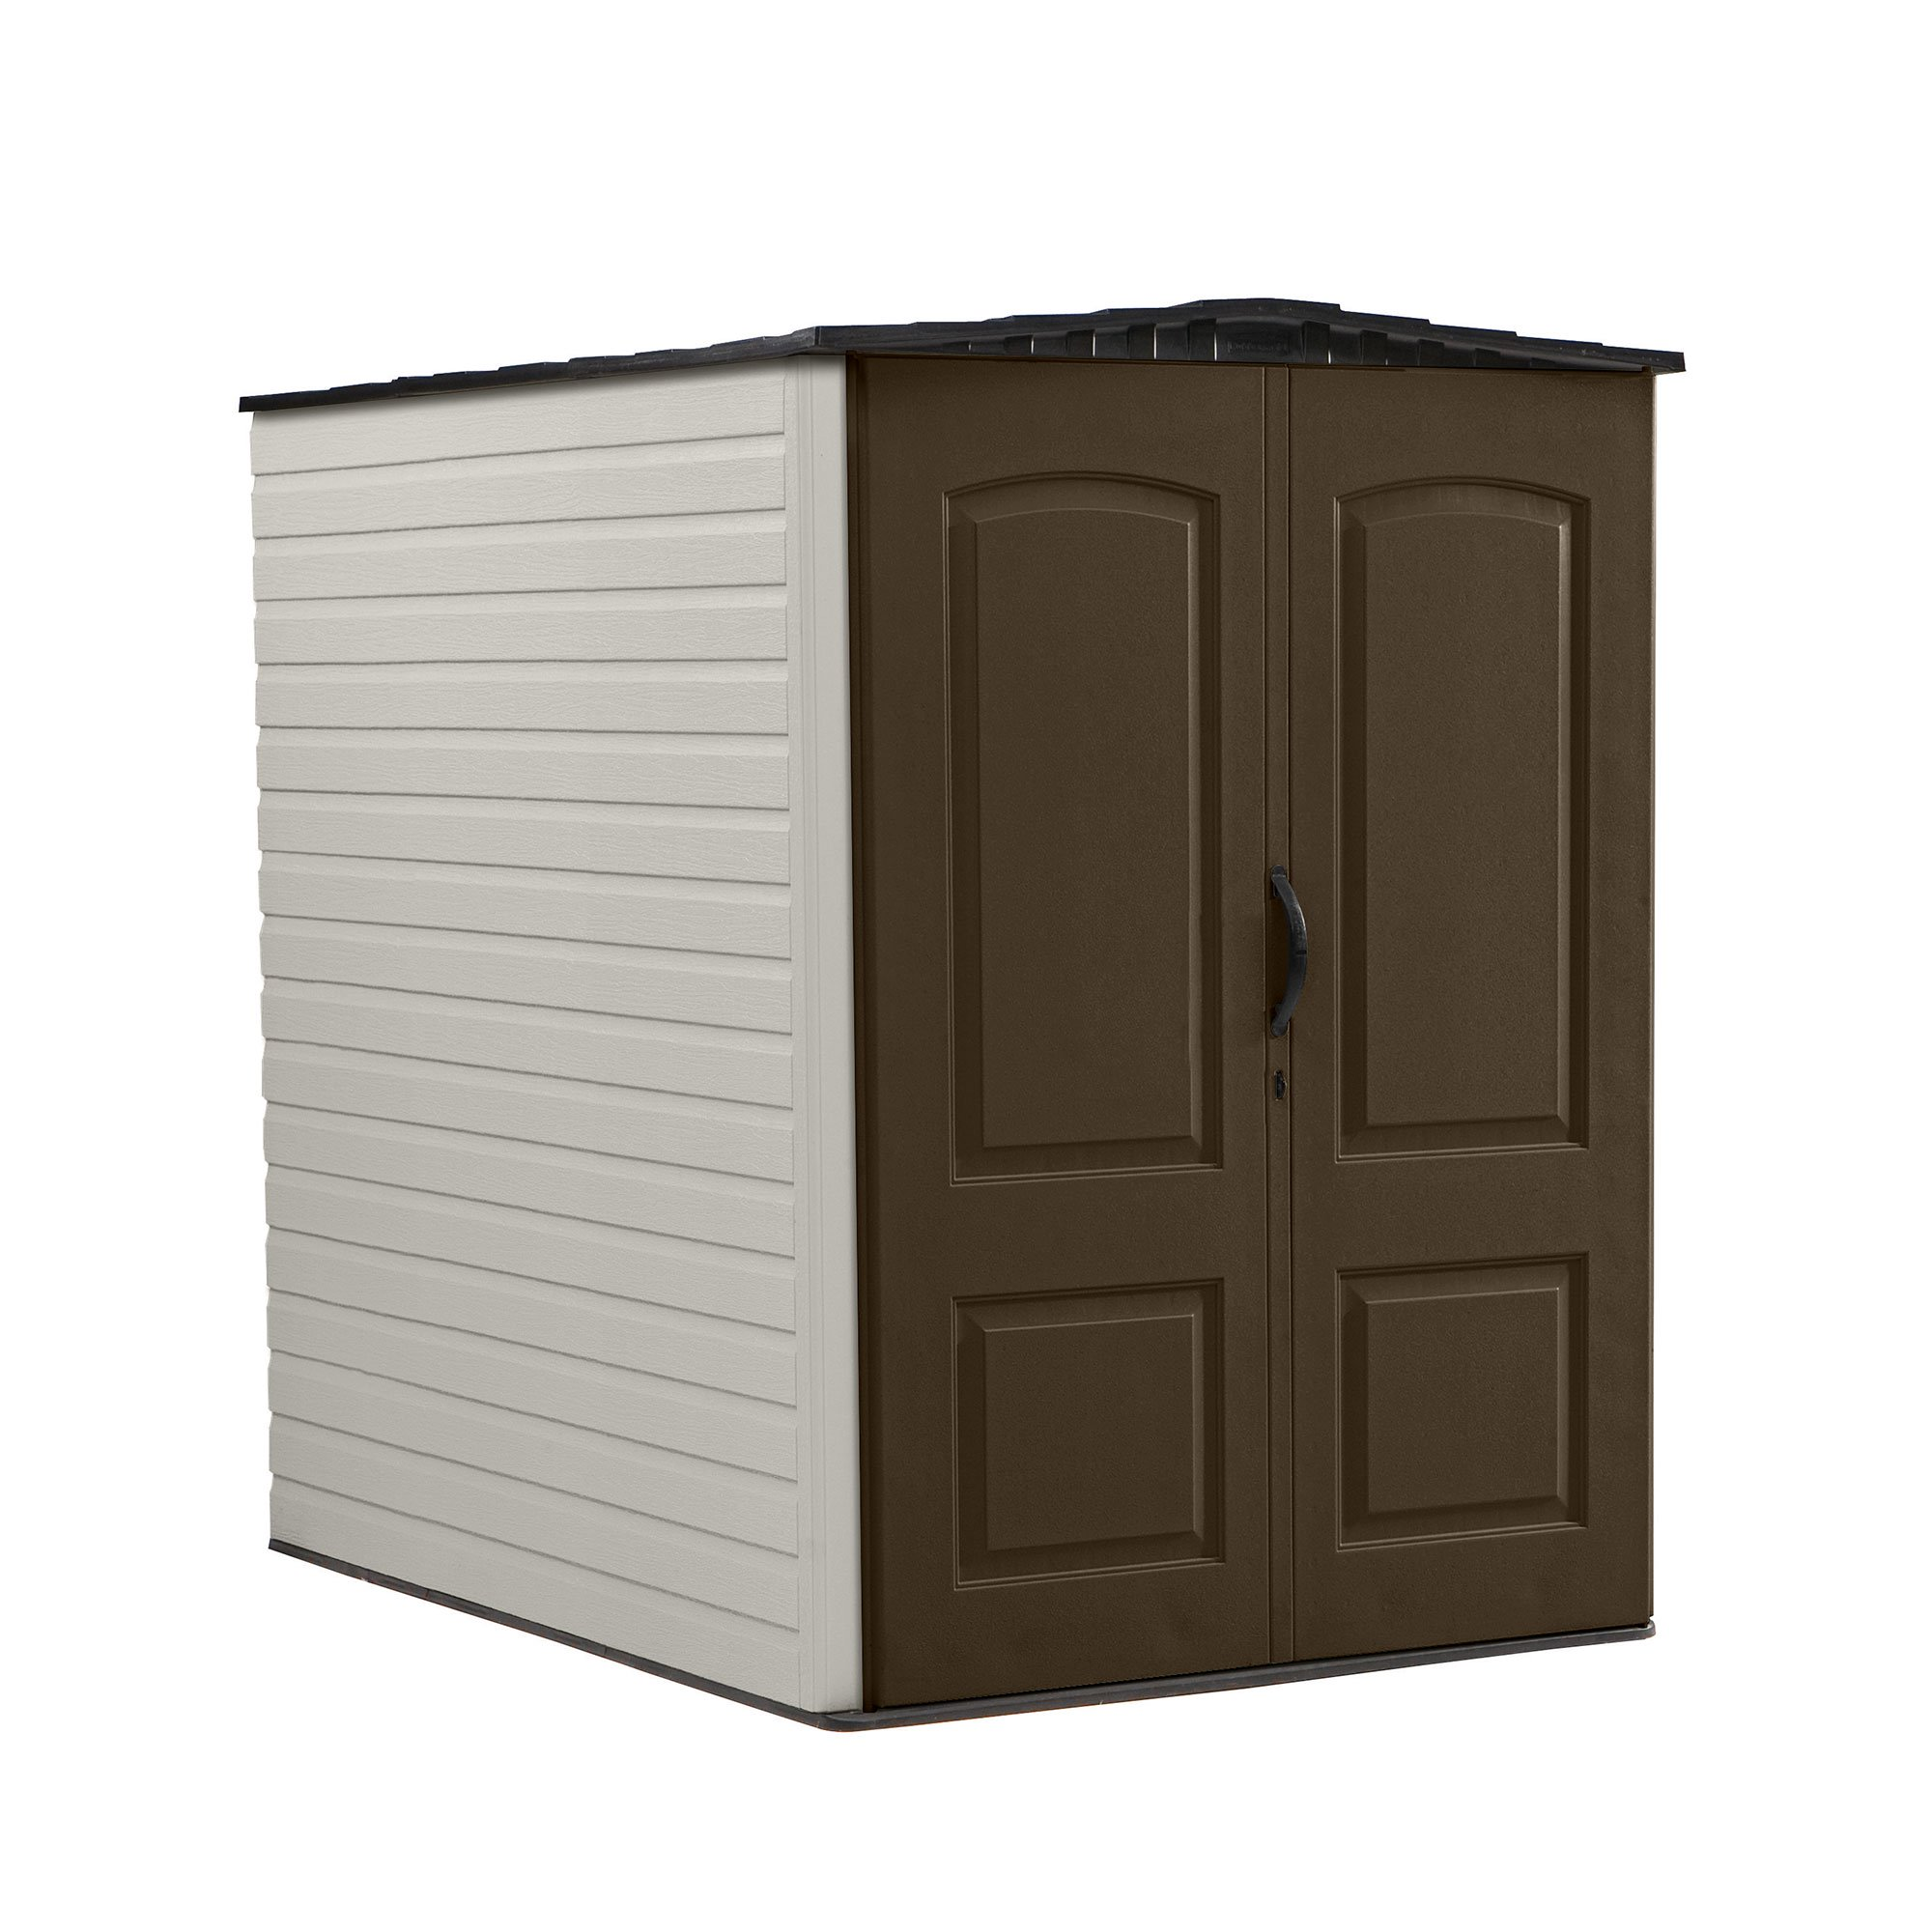 Delicieux Rubbermaid 1967674 Large Outdoor Gardening U0026 Tools Vertical Storage Shed,  Brown